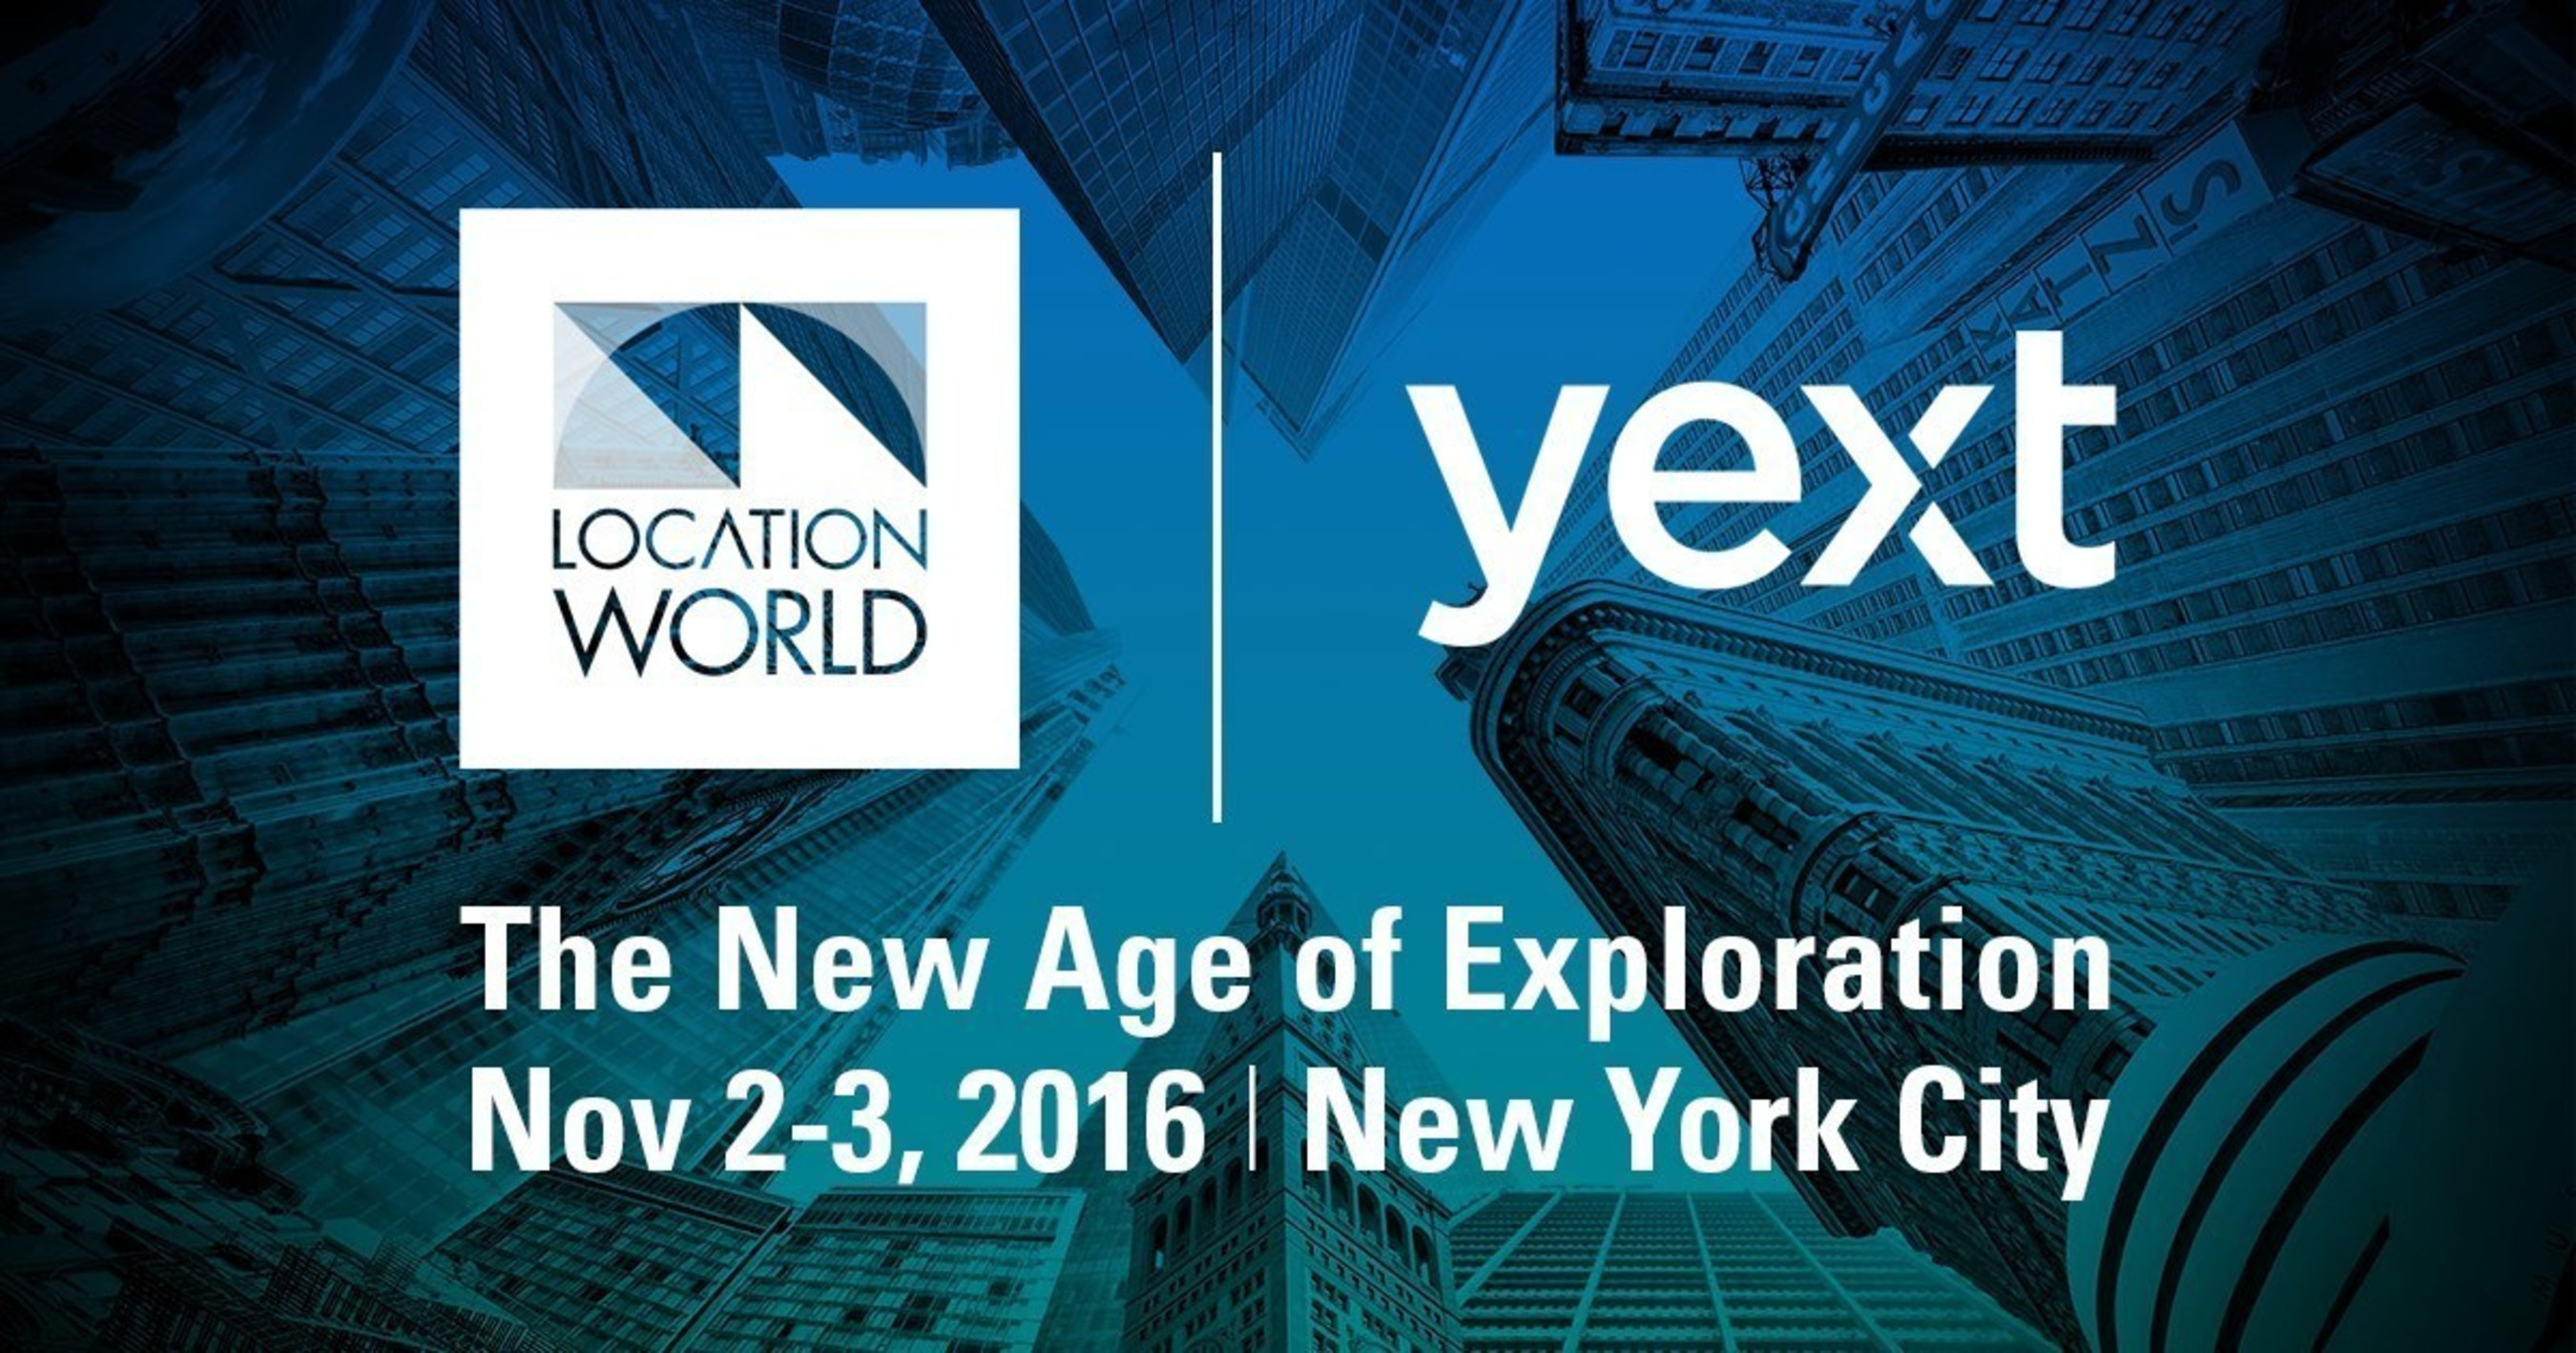 Yext's LocationWorld: The New Age of Exploration November 2-3, 2016 in New York City